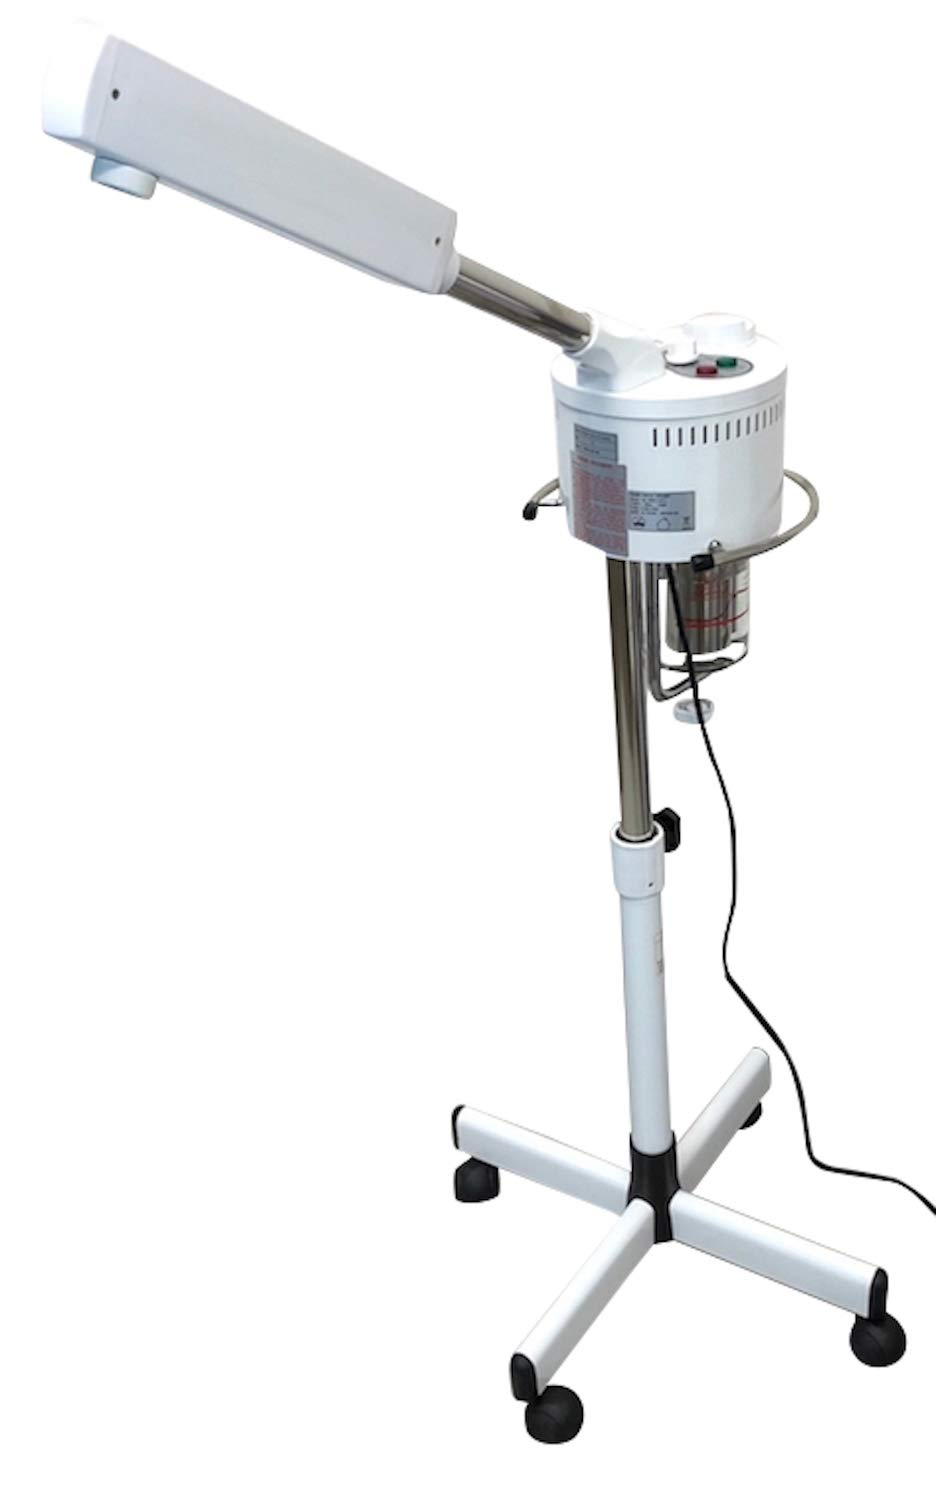 DevLon NorthWest Ozone Facial Steamer 750W Machine Spa Salon Ozone Steamer Skin Cleaning Equipment: Beauty